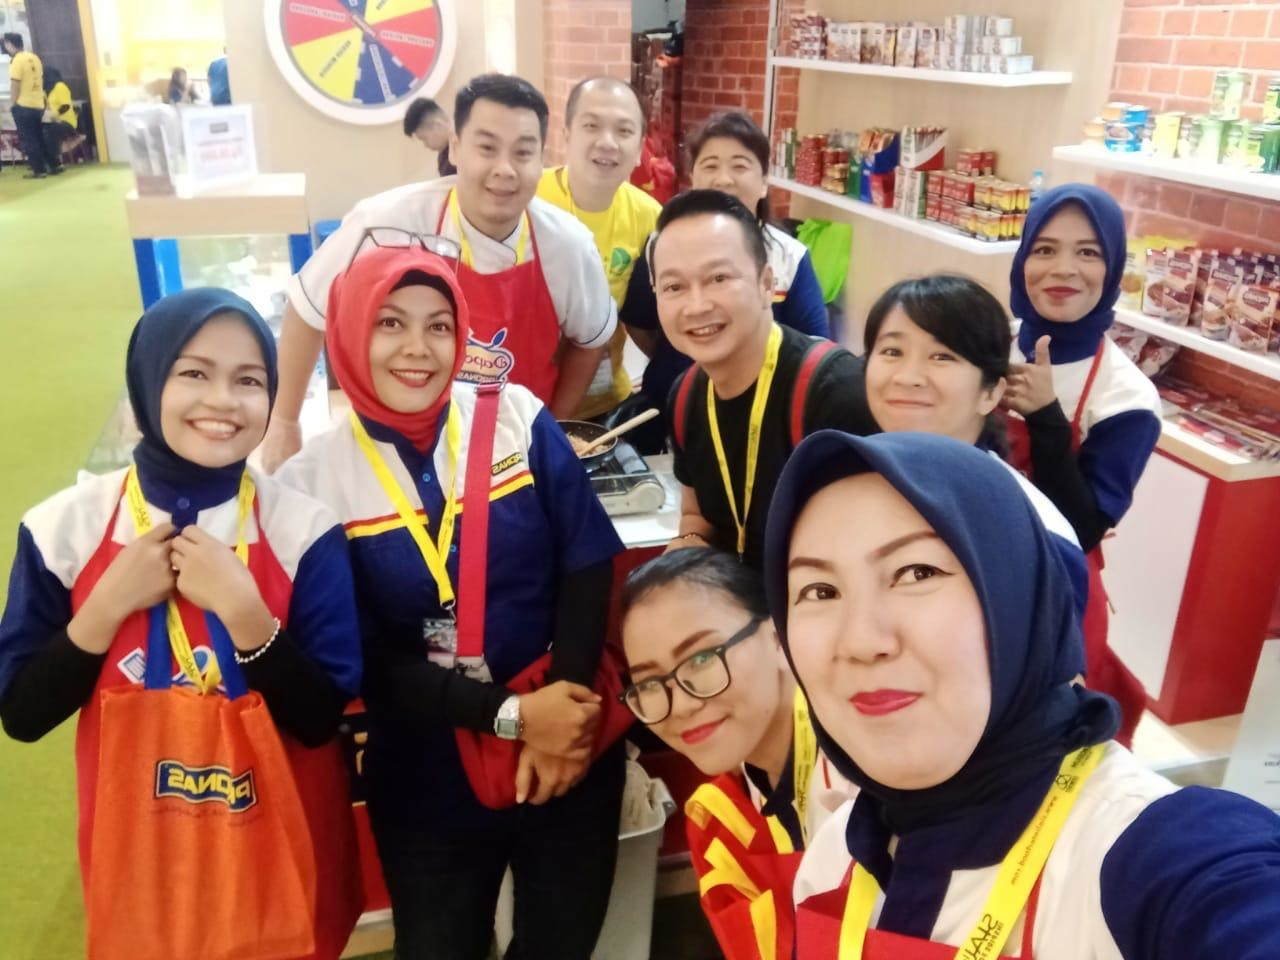 Keseruan booth Pronas di SIAL Interfood 2019